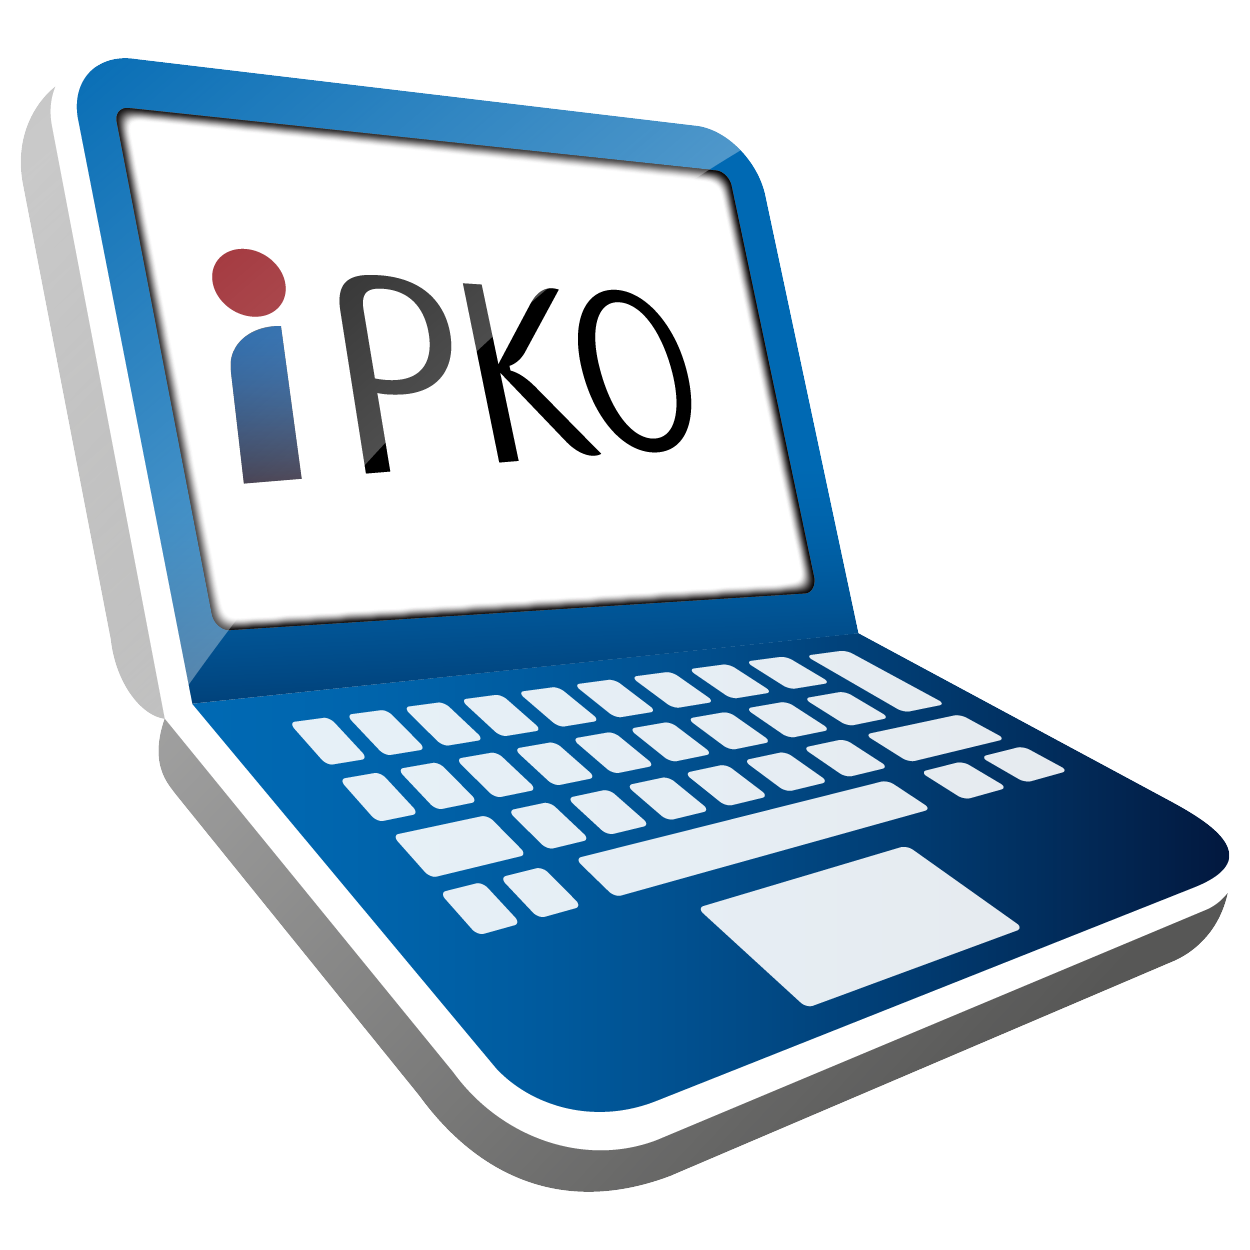 laptop iPKO